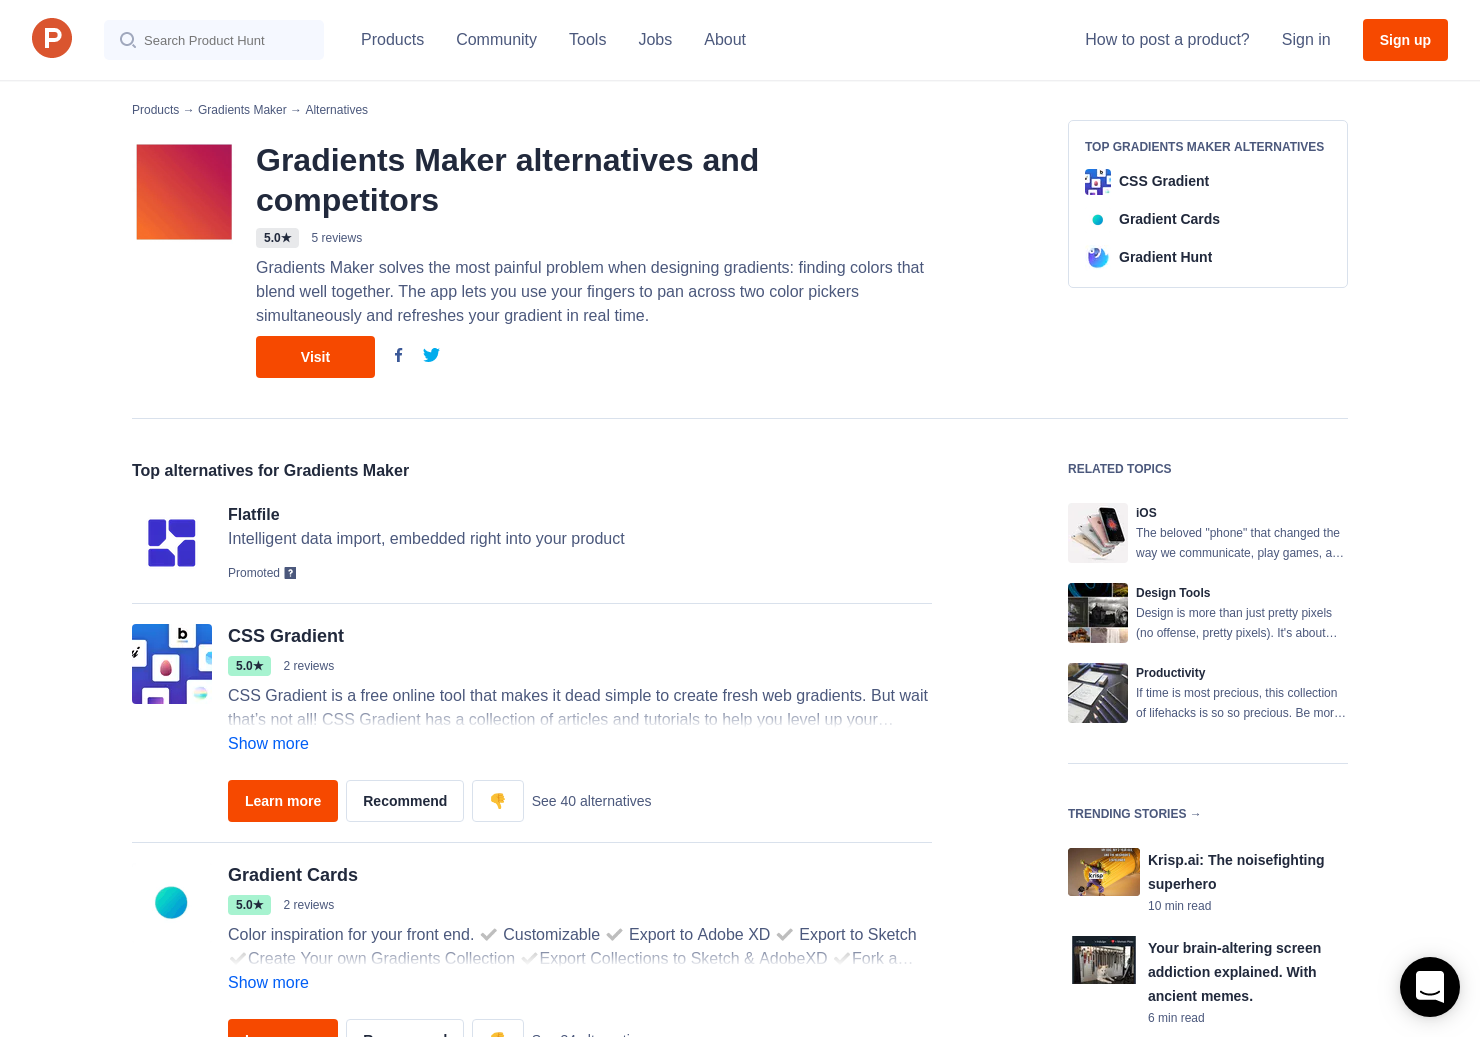 6 Alternatives to Gradients Maker for iPhone   Product Hunt